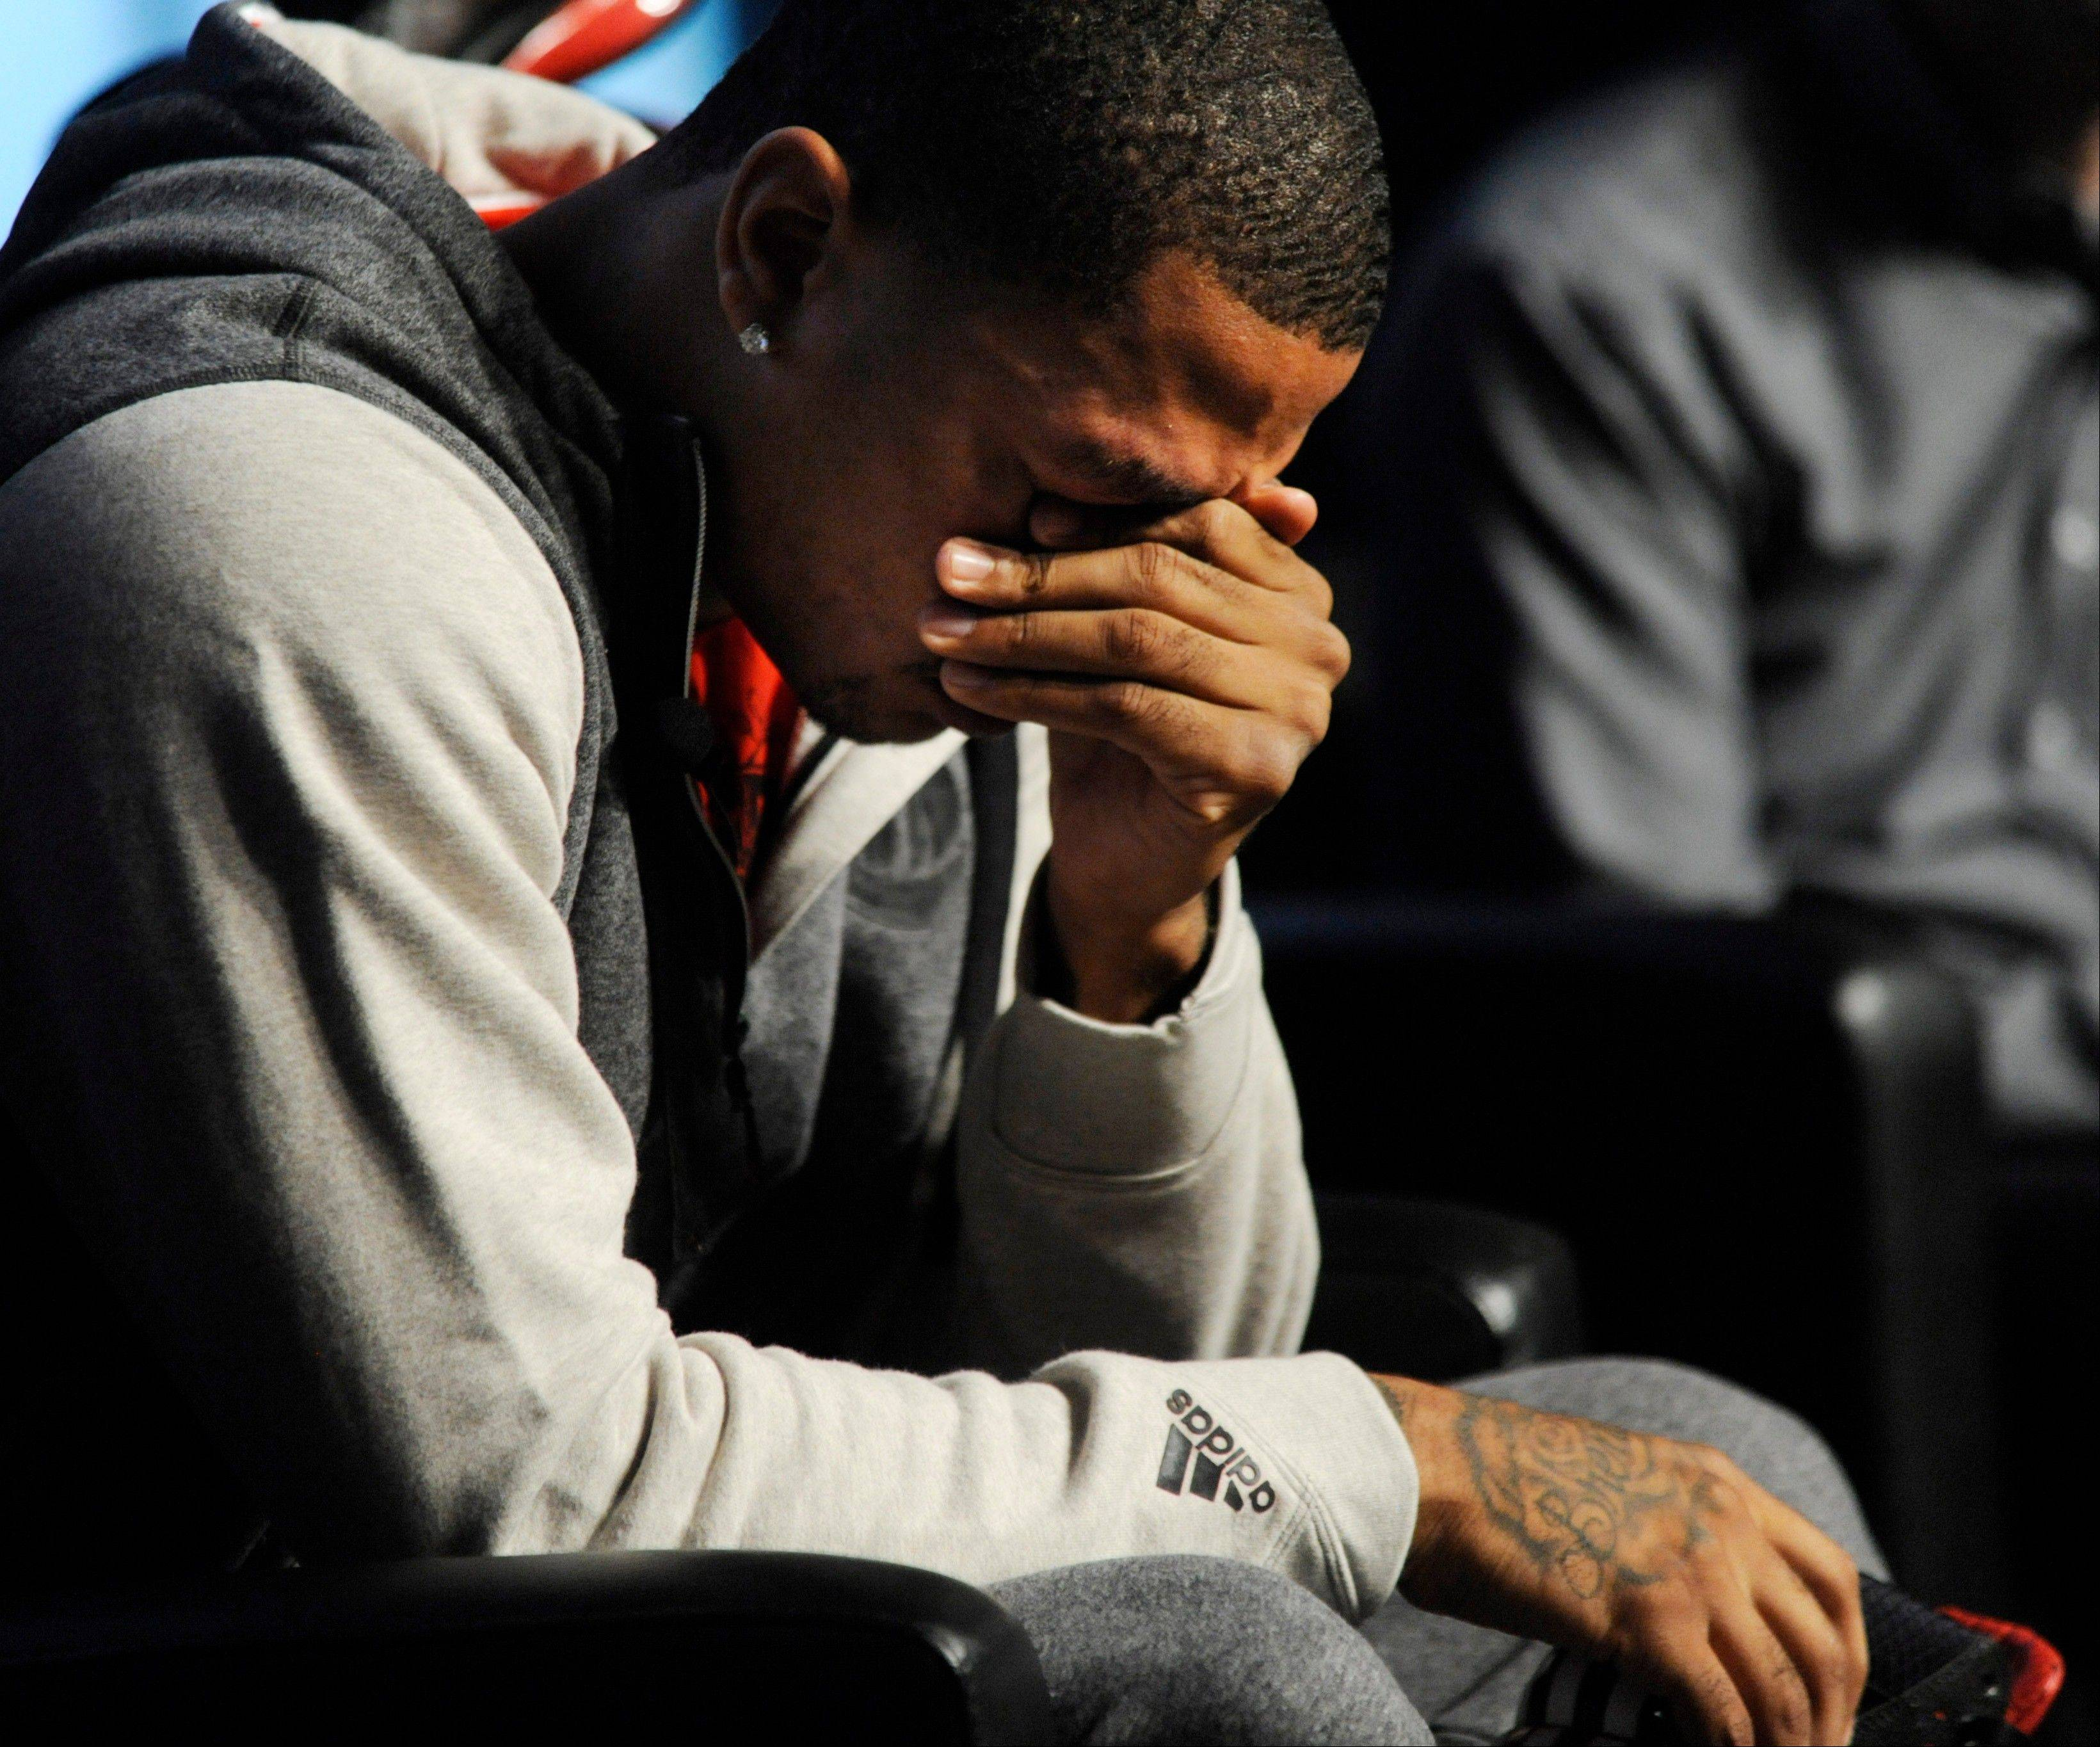 Bulls guard Derrick Rose breaks down and cries Thursday during a news conference unveiling his new shoe the Adidas D Rose 3.